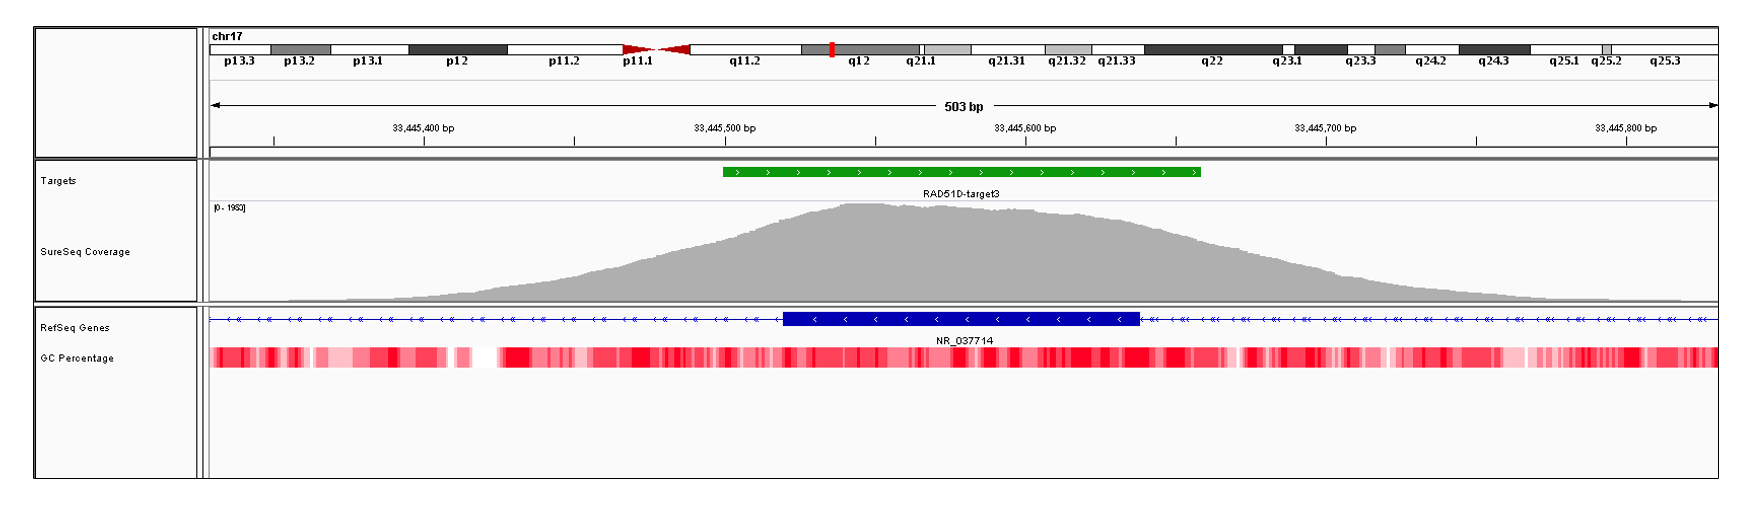 RAD51D Exon 3 (hg19 chr17:33445520-33445638). Depth of coverage per base (grey). Targeted region (green). Gene coding region as defined by RefSeq (blue). GC percentage (red). Image